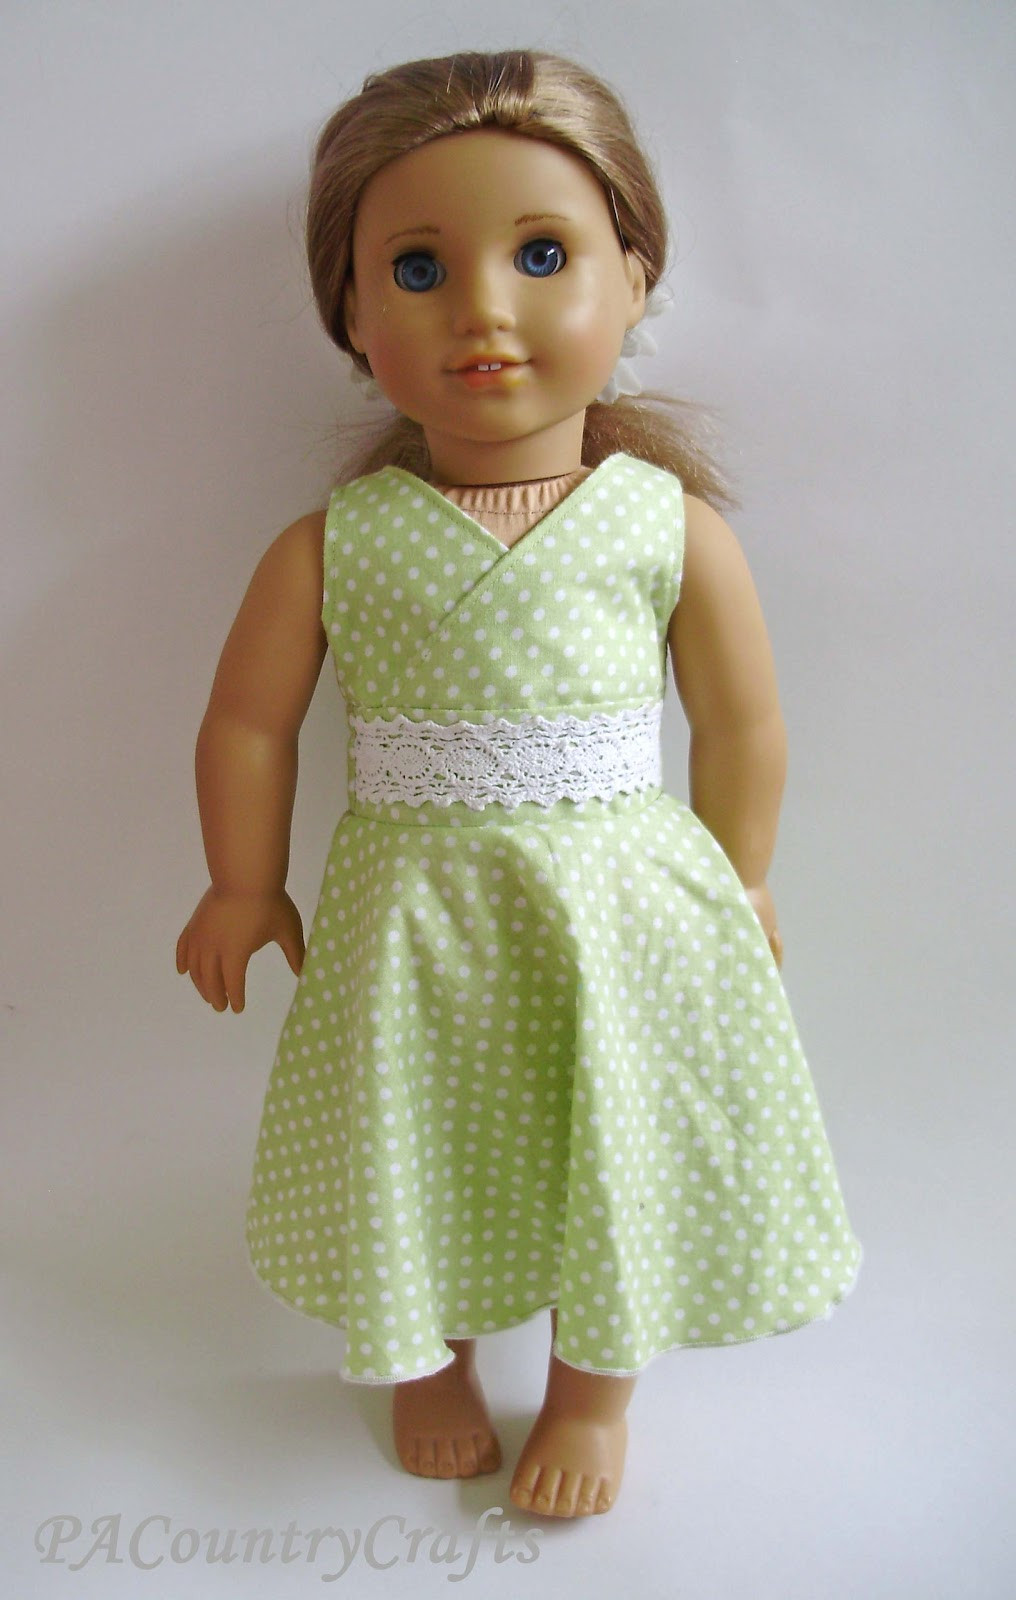 Doll Patterns Luxury Twirly Lace Doll Dress Pattern Of Doll Patterns Best Of Gingermelon Dolls My Felt Doll Knitted Outfit Patterns